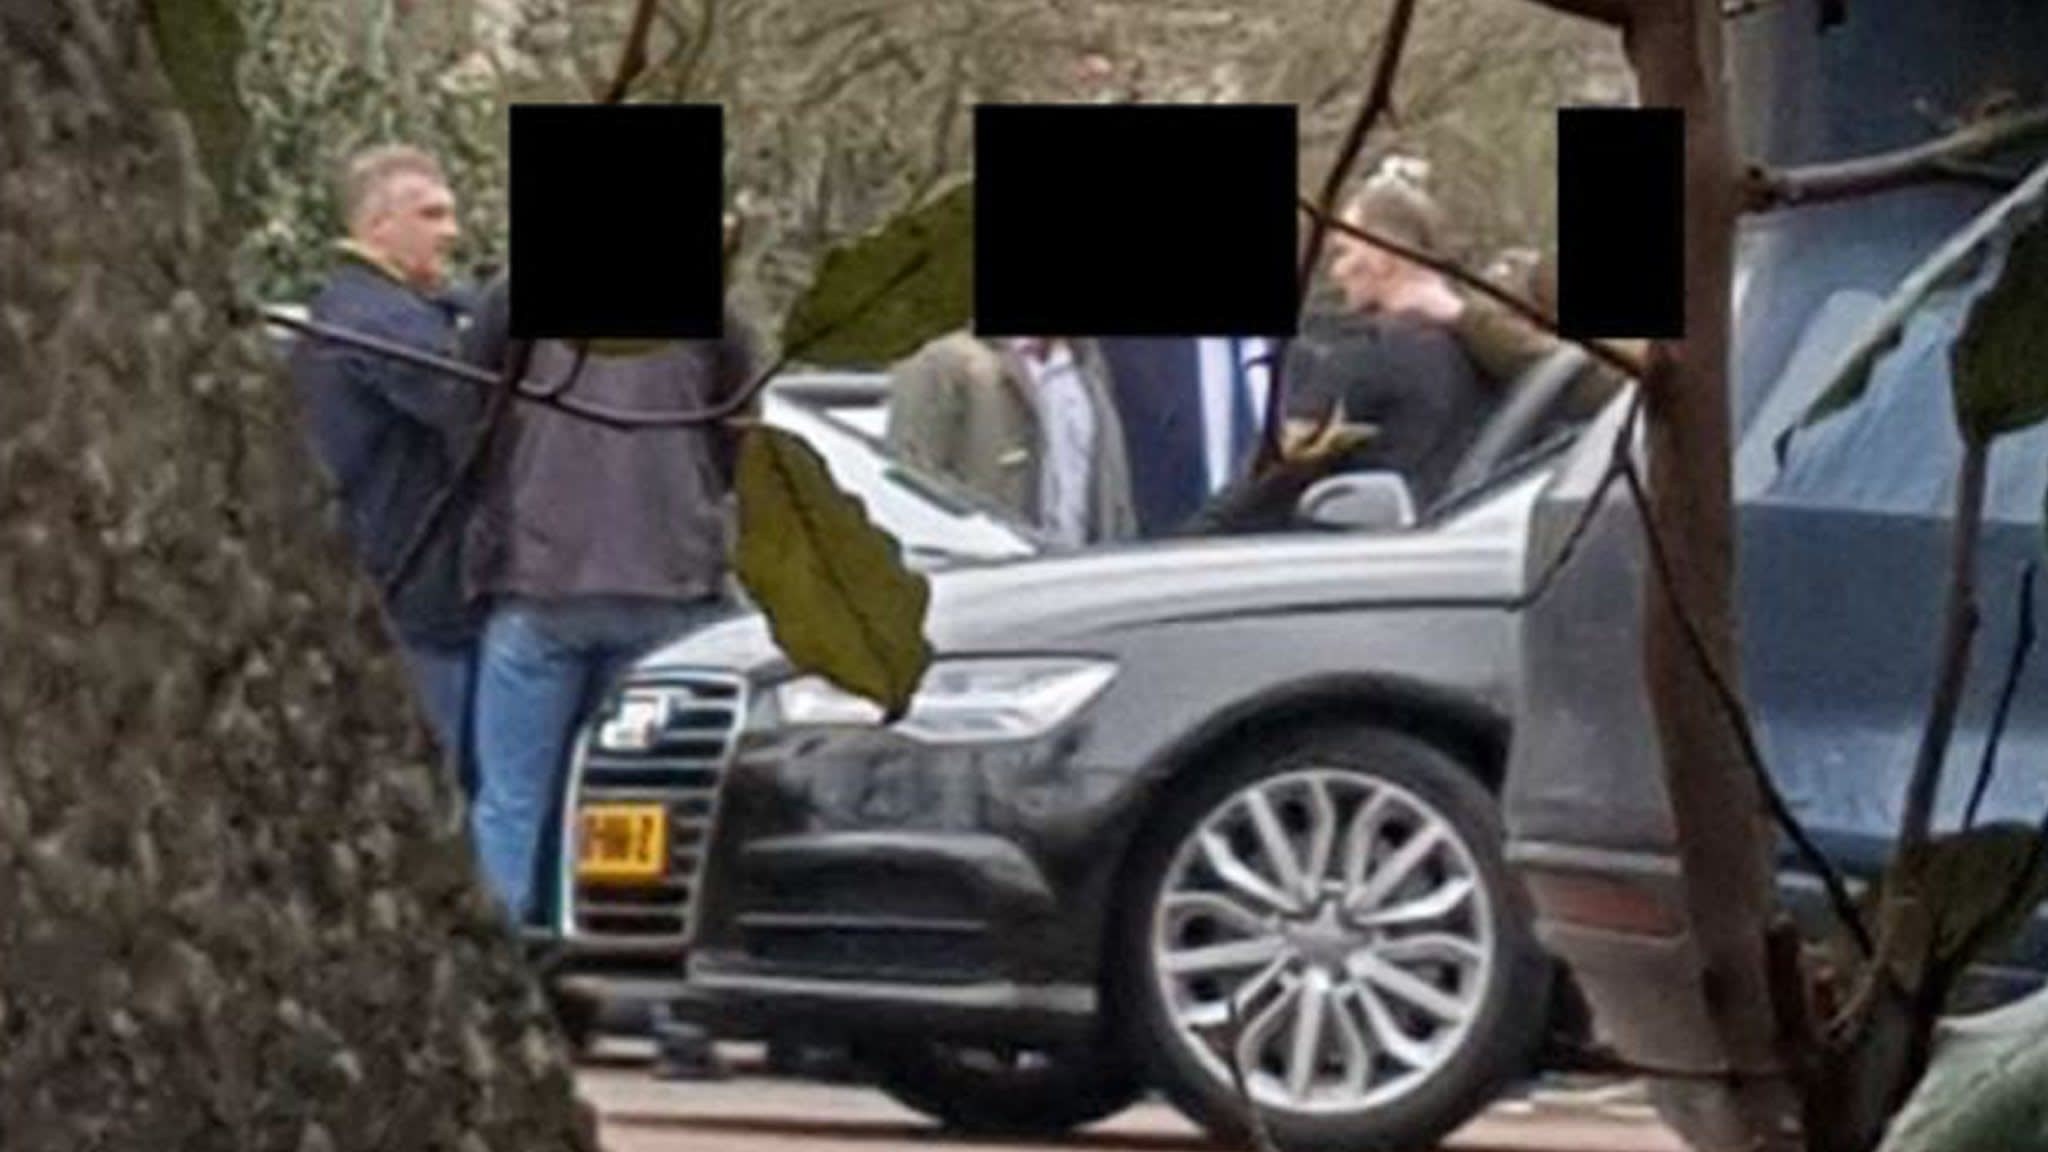 How Dutch authorities caught alleged Russian spies